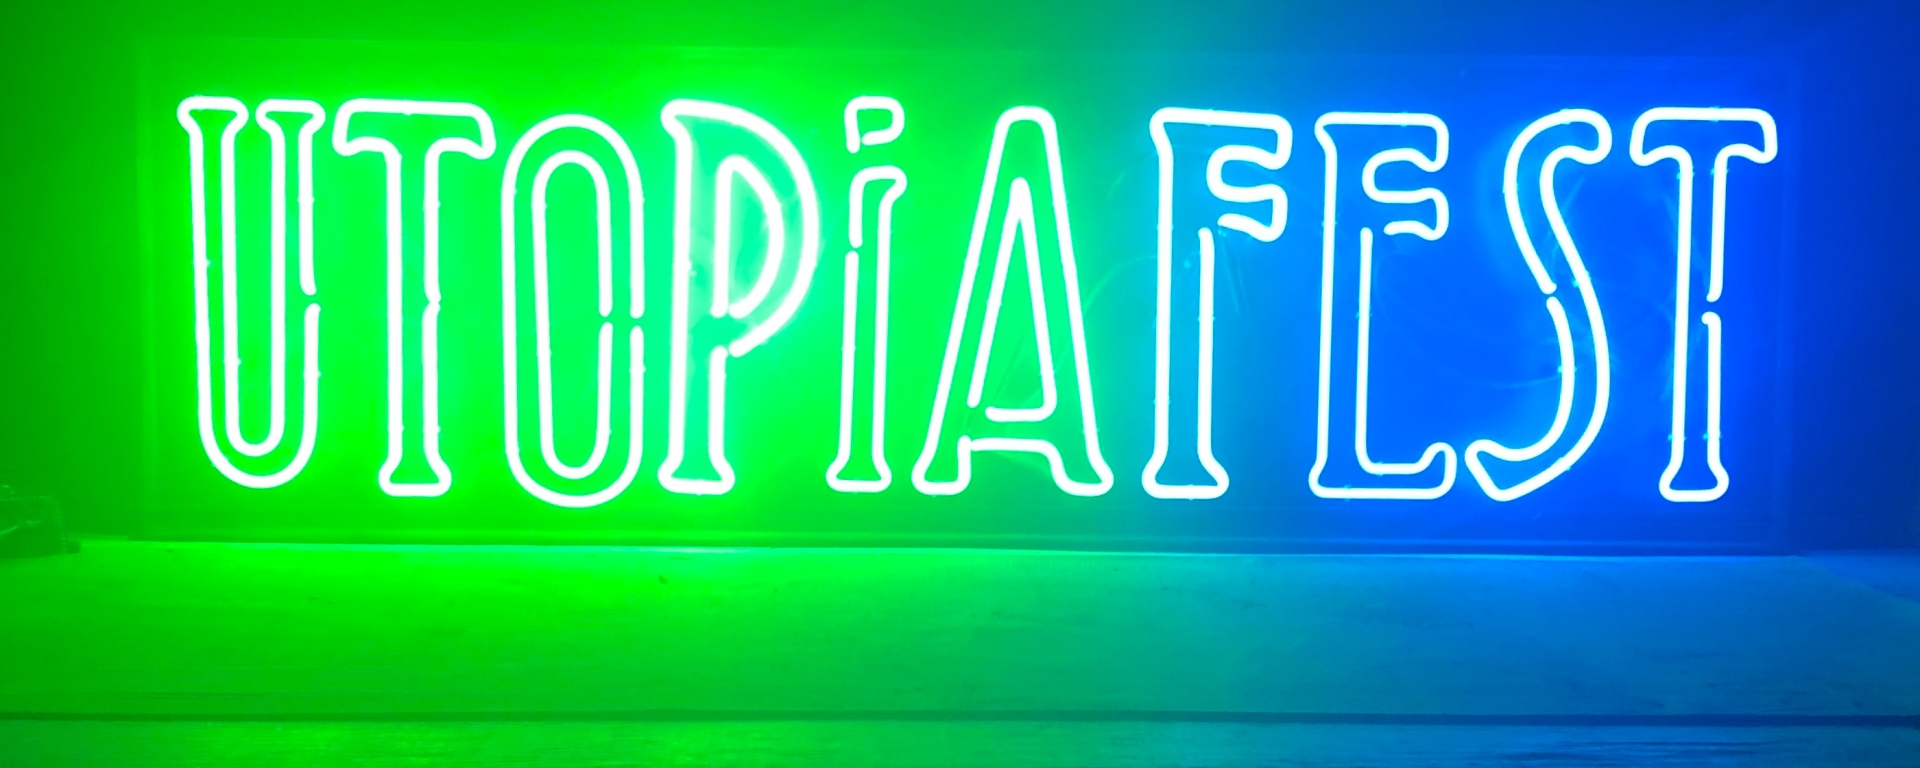 "Neon green and blue light sign that reads ""UTOPIAFEST"" in darkness."